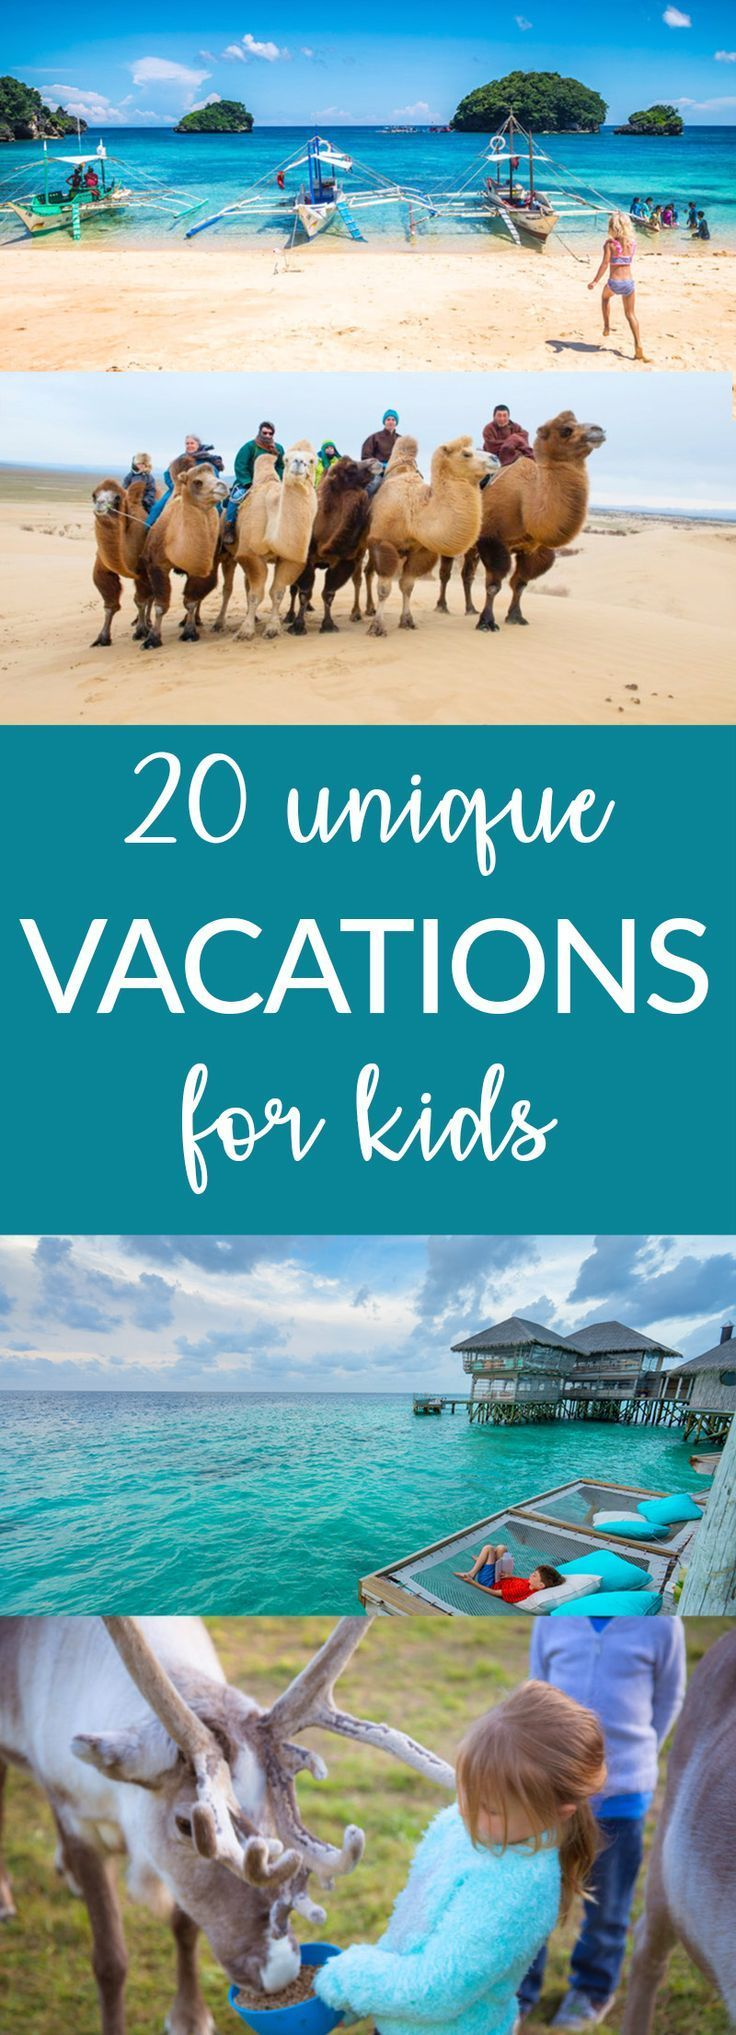 Looking for a unique vacation for kids? 20 Unique Vacations for Kids. #vacation #kids #familytravel #style #shopping #styles #outfit #pretty #girl #girls #beauty #beautiful #me #cute #stylish #photooftheday #swag #dress #shoes #diy #design #fashion #Travel